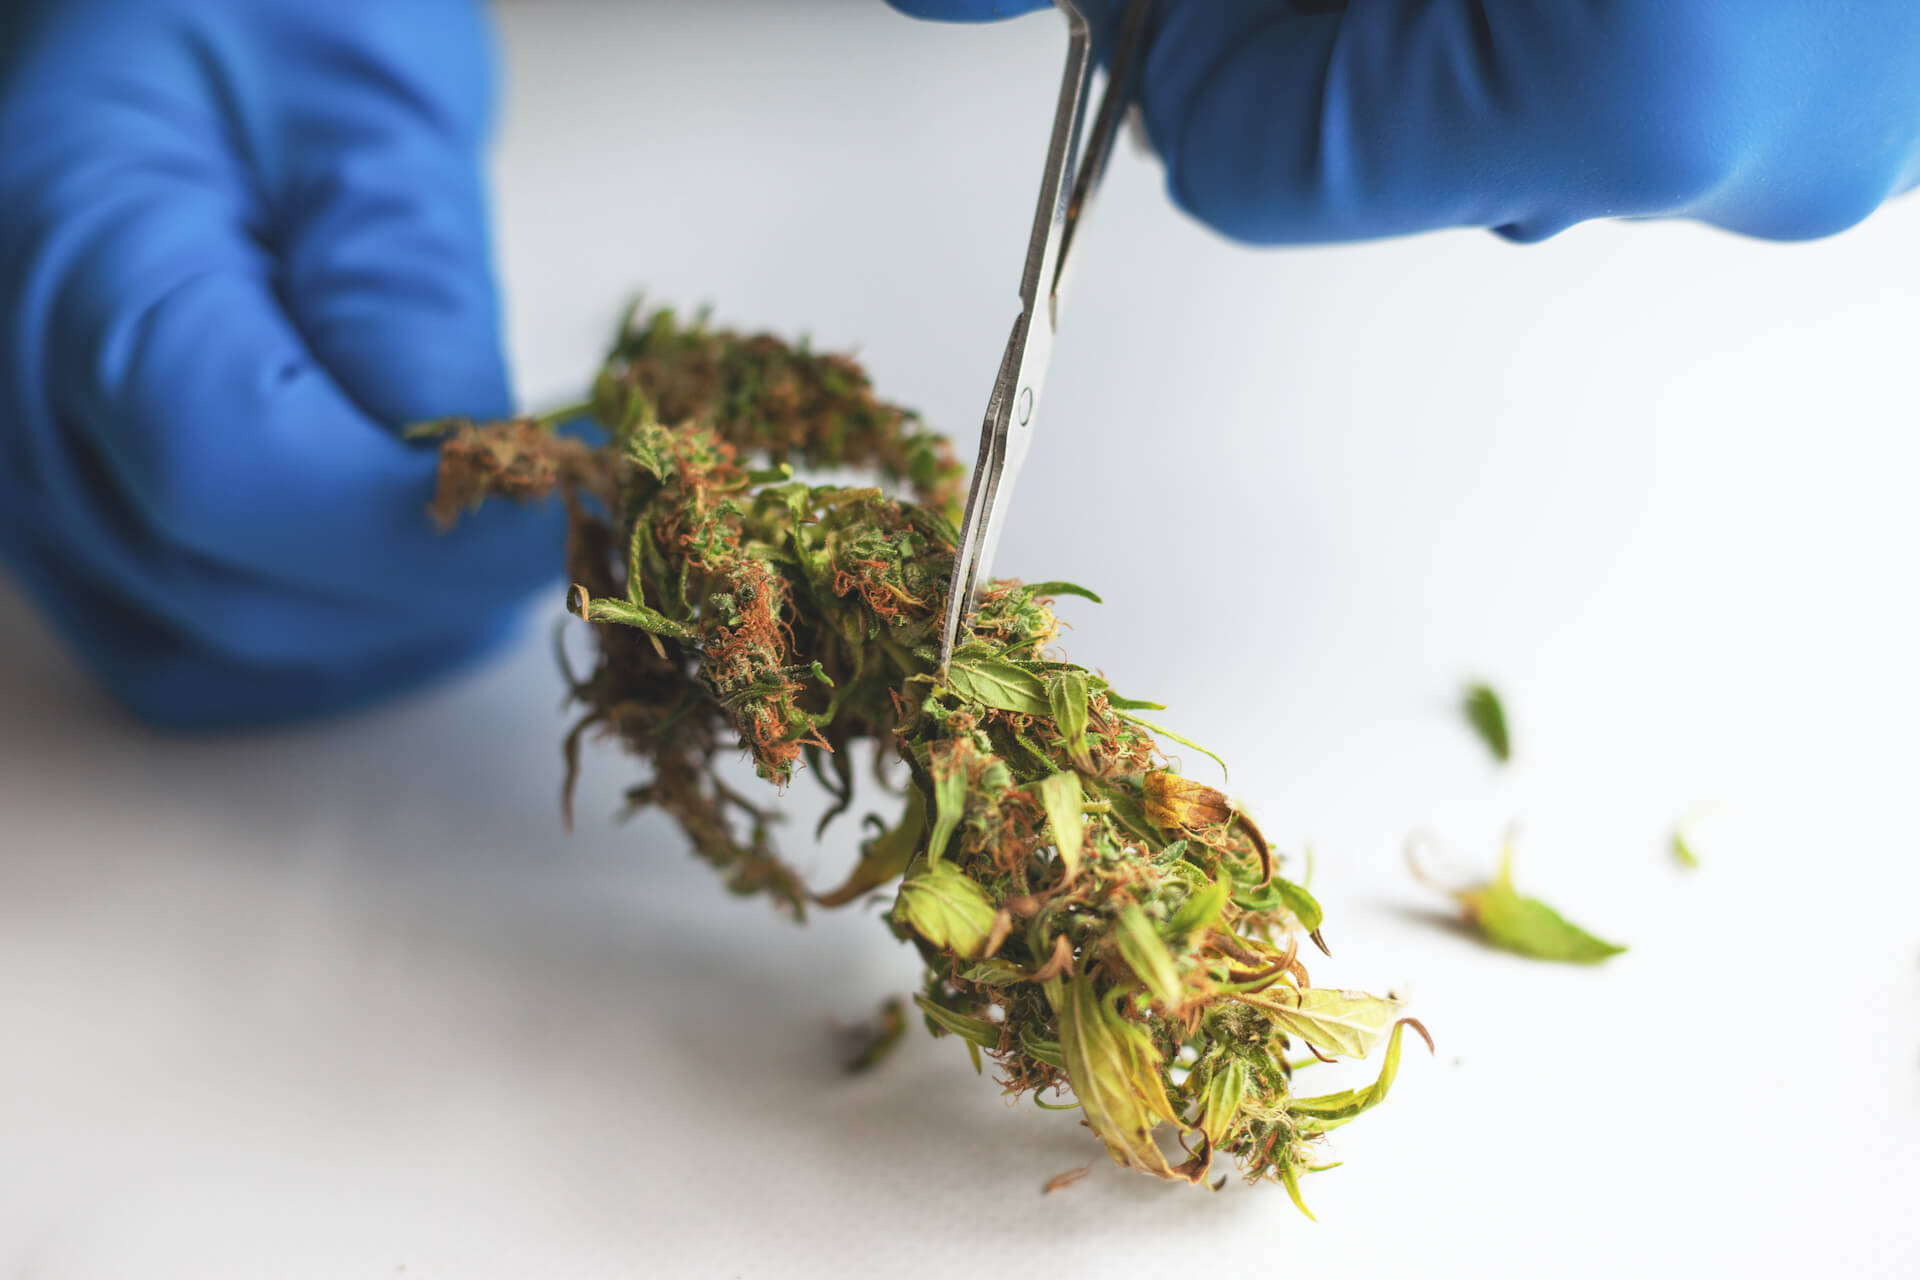 trimming-manicuring-buds-cannabis